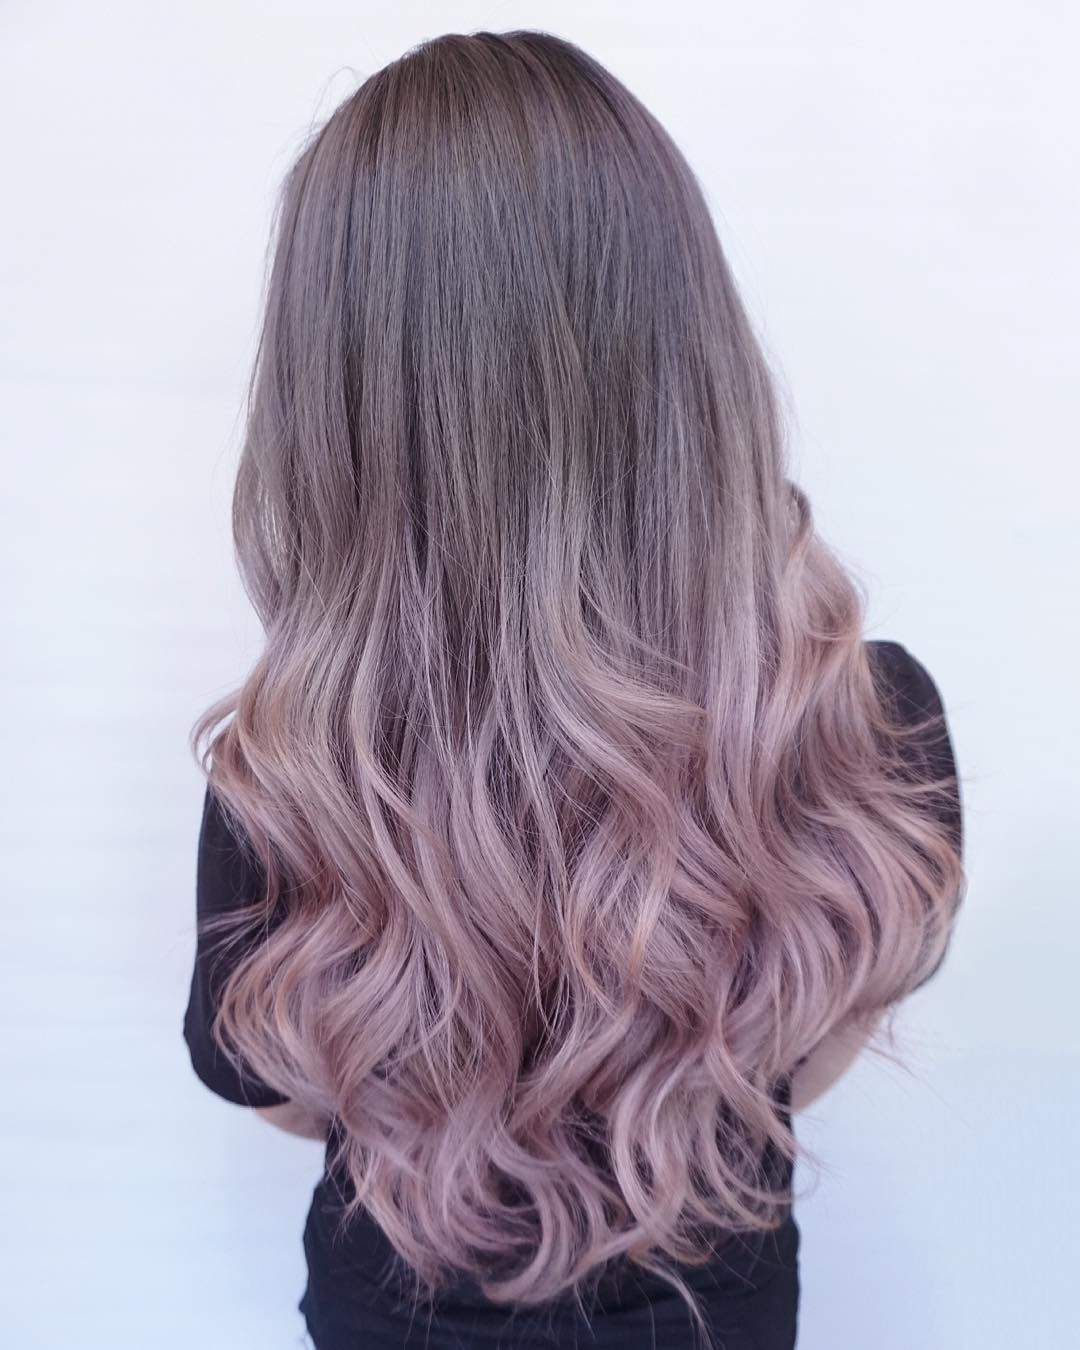 24 Dyed Hairstyles You Need To Try Hair Styles Lilac Hair Hair Color Pastel